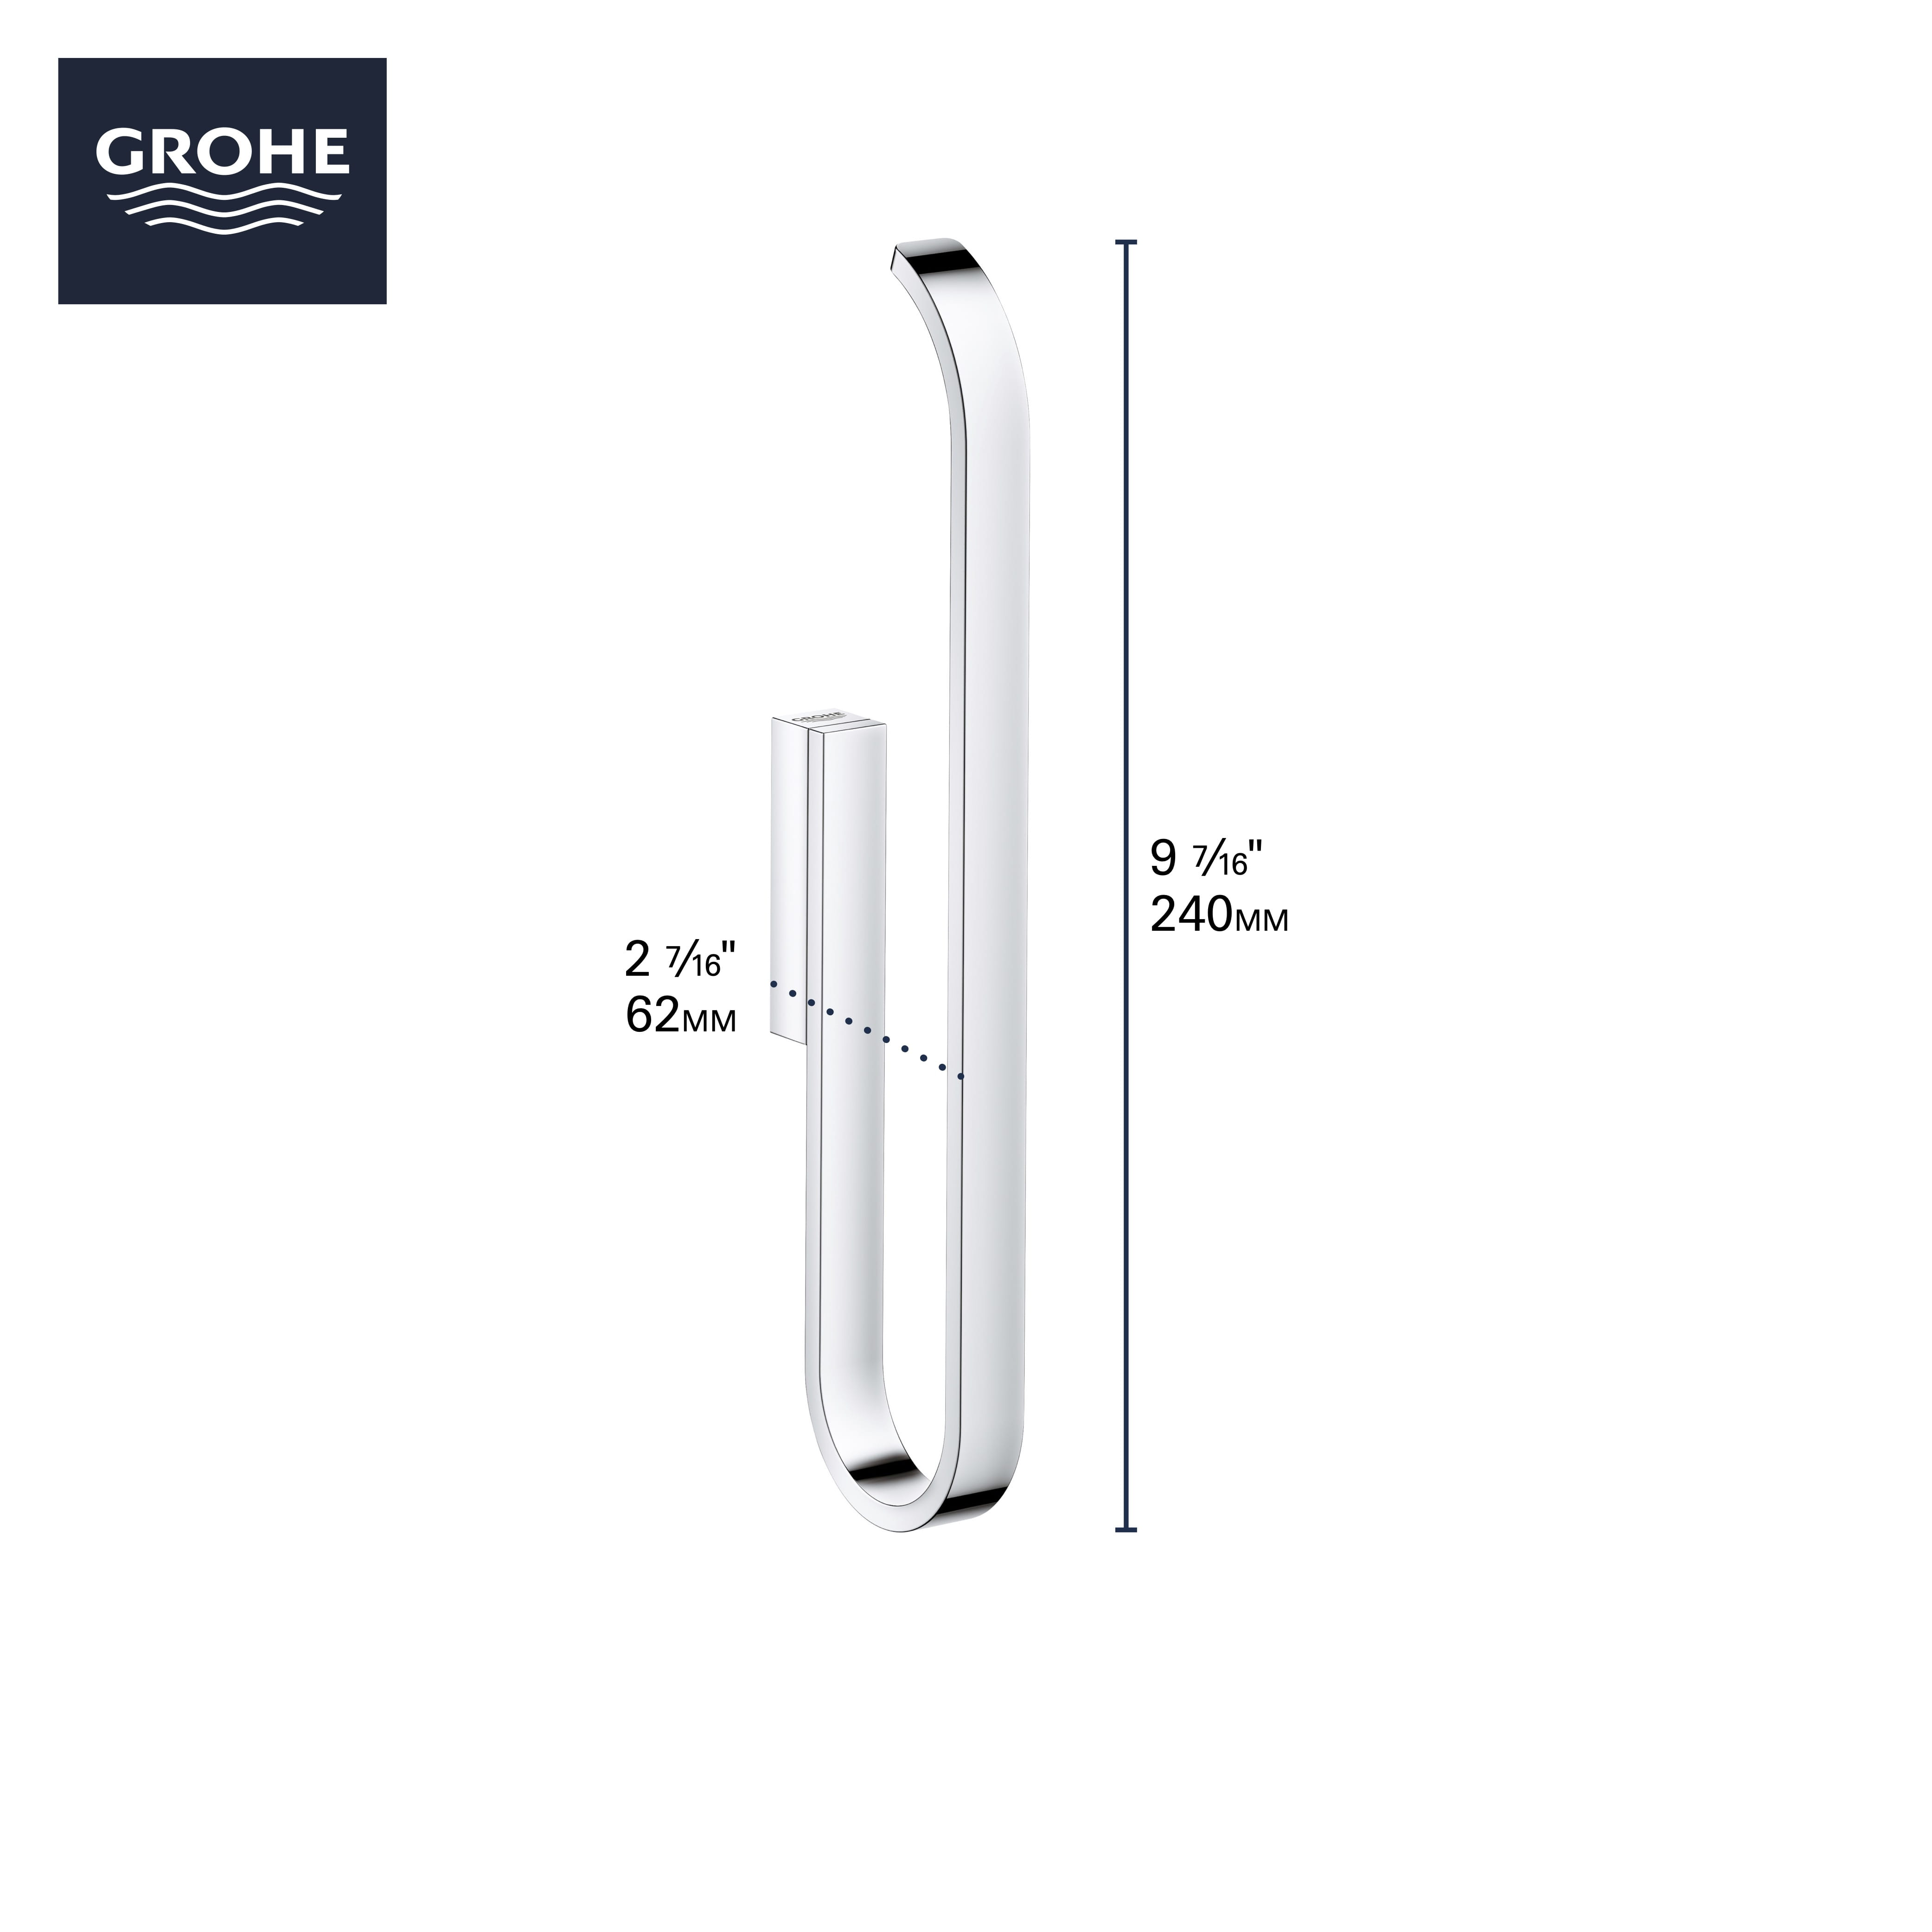 Paper Holder GROHE BRUSHED COOL SUNRISE